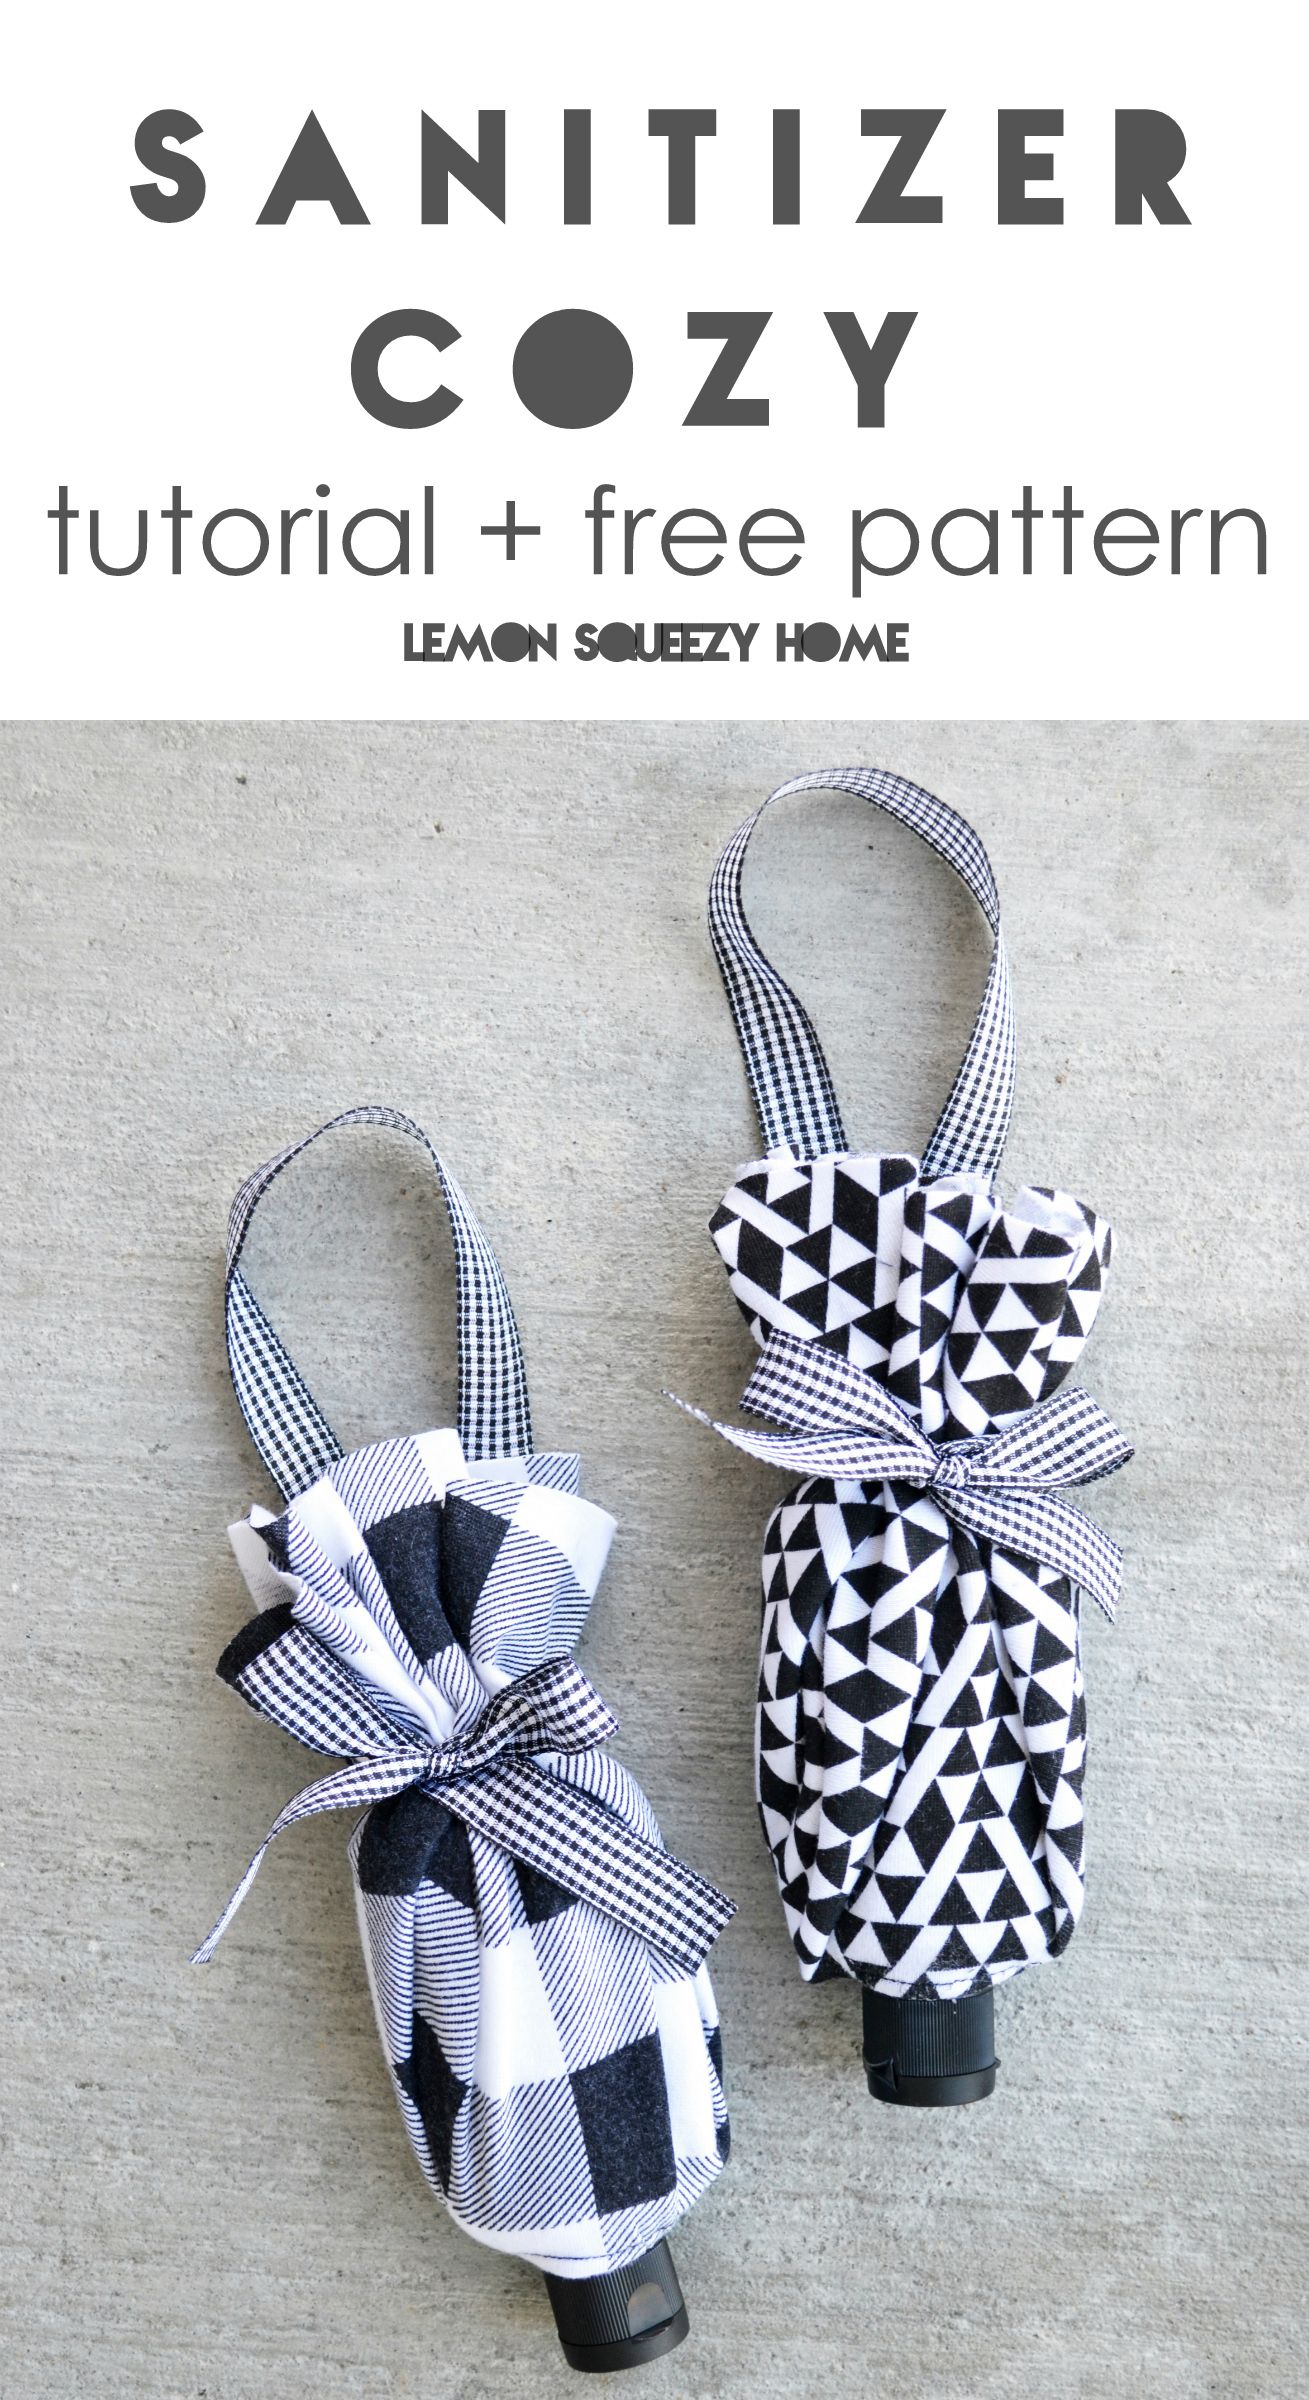 Hand Sanitizer Cozy Tutorial Pattern Lemon Squeezy Home Diy